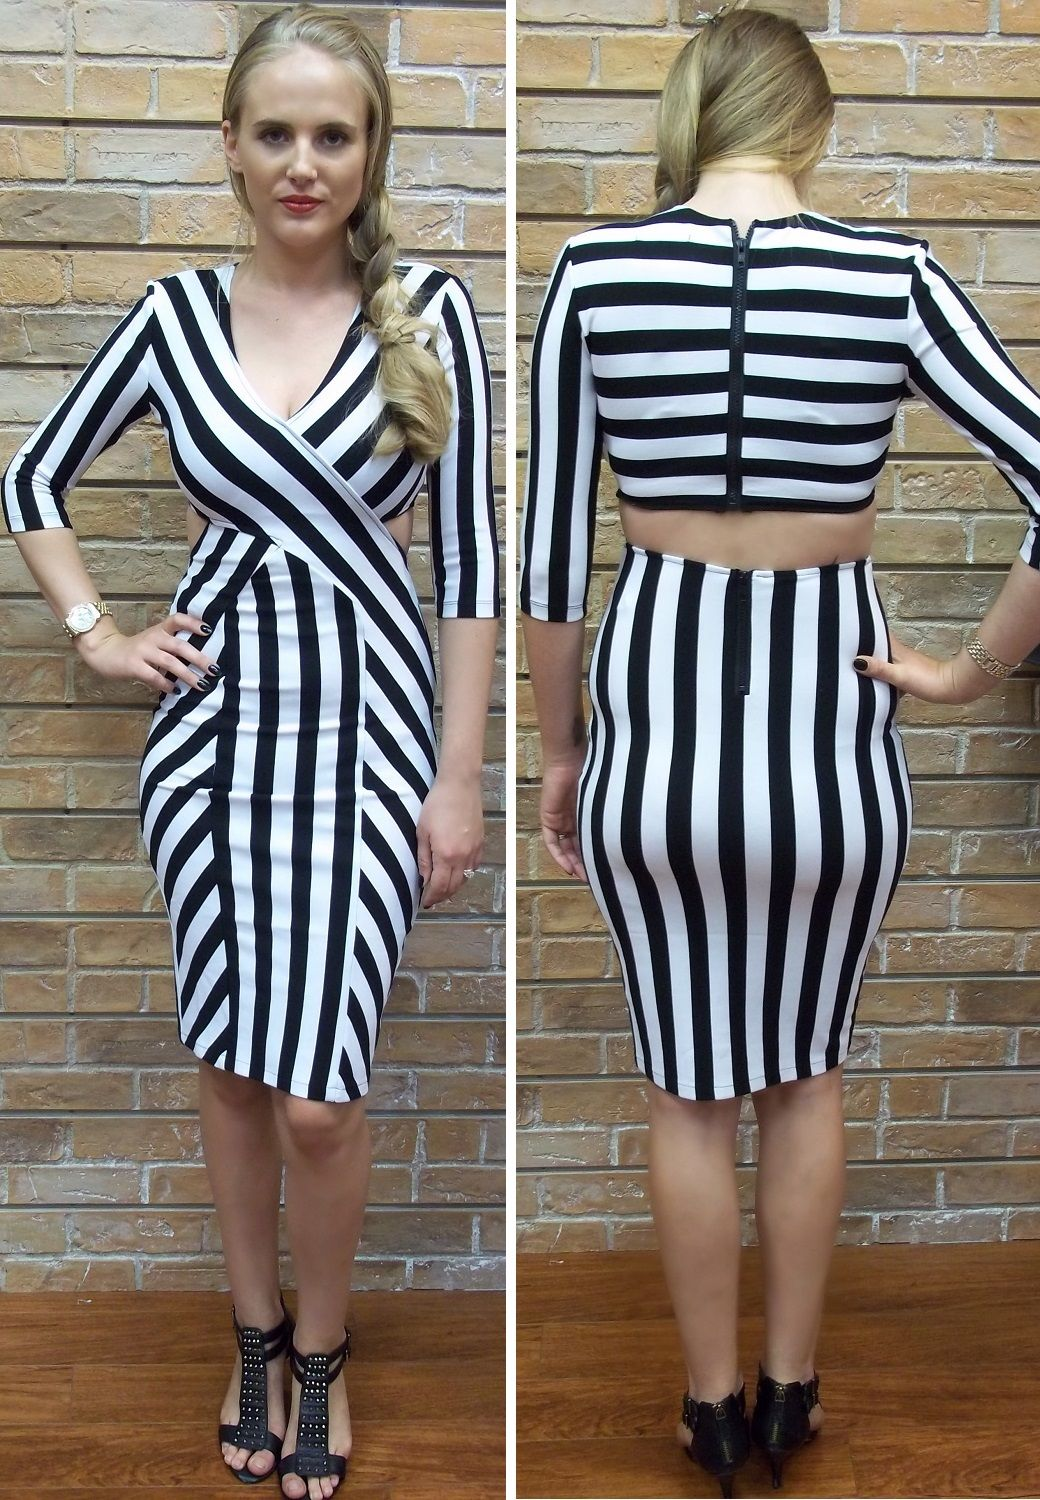 c46a281c0787f Form Fitting Black and White Striped Dress with Cut Outs ~ Apricot Lane  South Florida